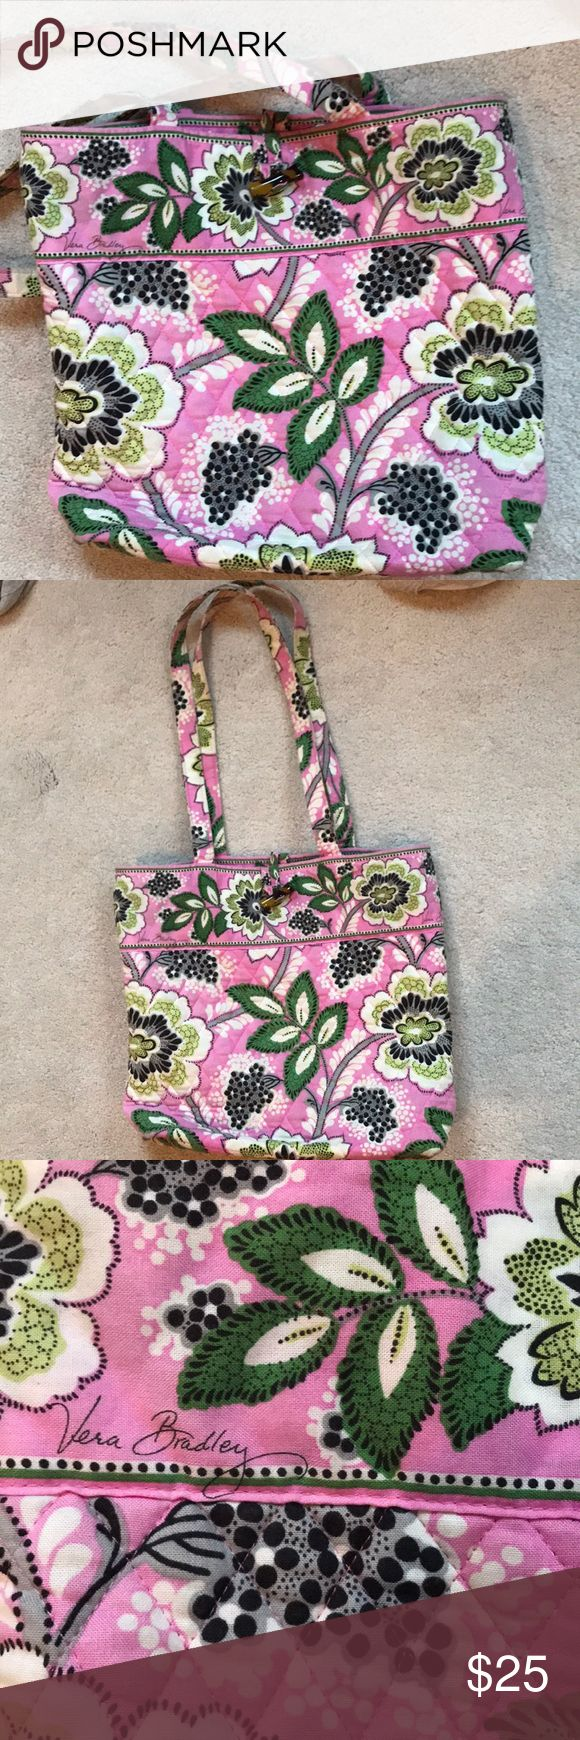 "VERA BRADLEY TOTE BAG This cute tote bag is Vera Bradley and has barely been used! Received as a gift but isn't really my style. Hits at the hip when worn (I'm 5'4""). Latch at the top, pockets inside, and comfortable cloth material. A great Christmas gift, make offers! Vera Bradley Bags Totes"